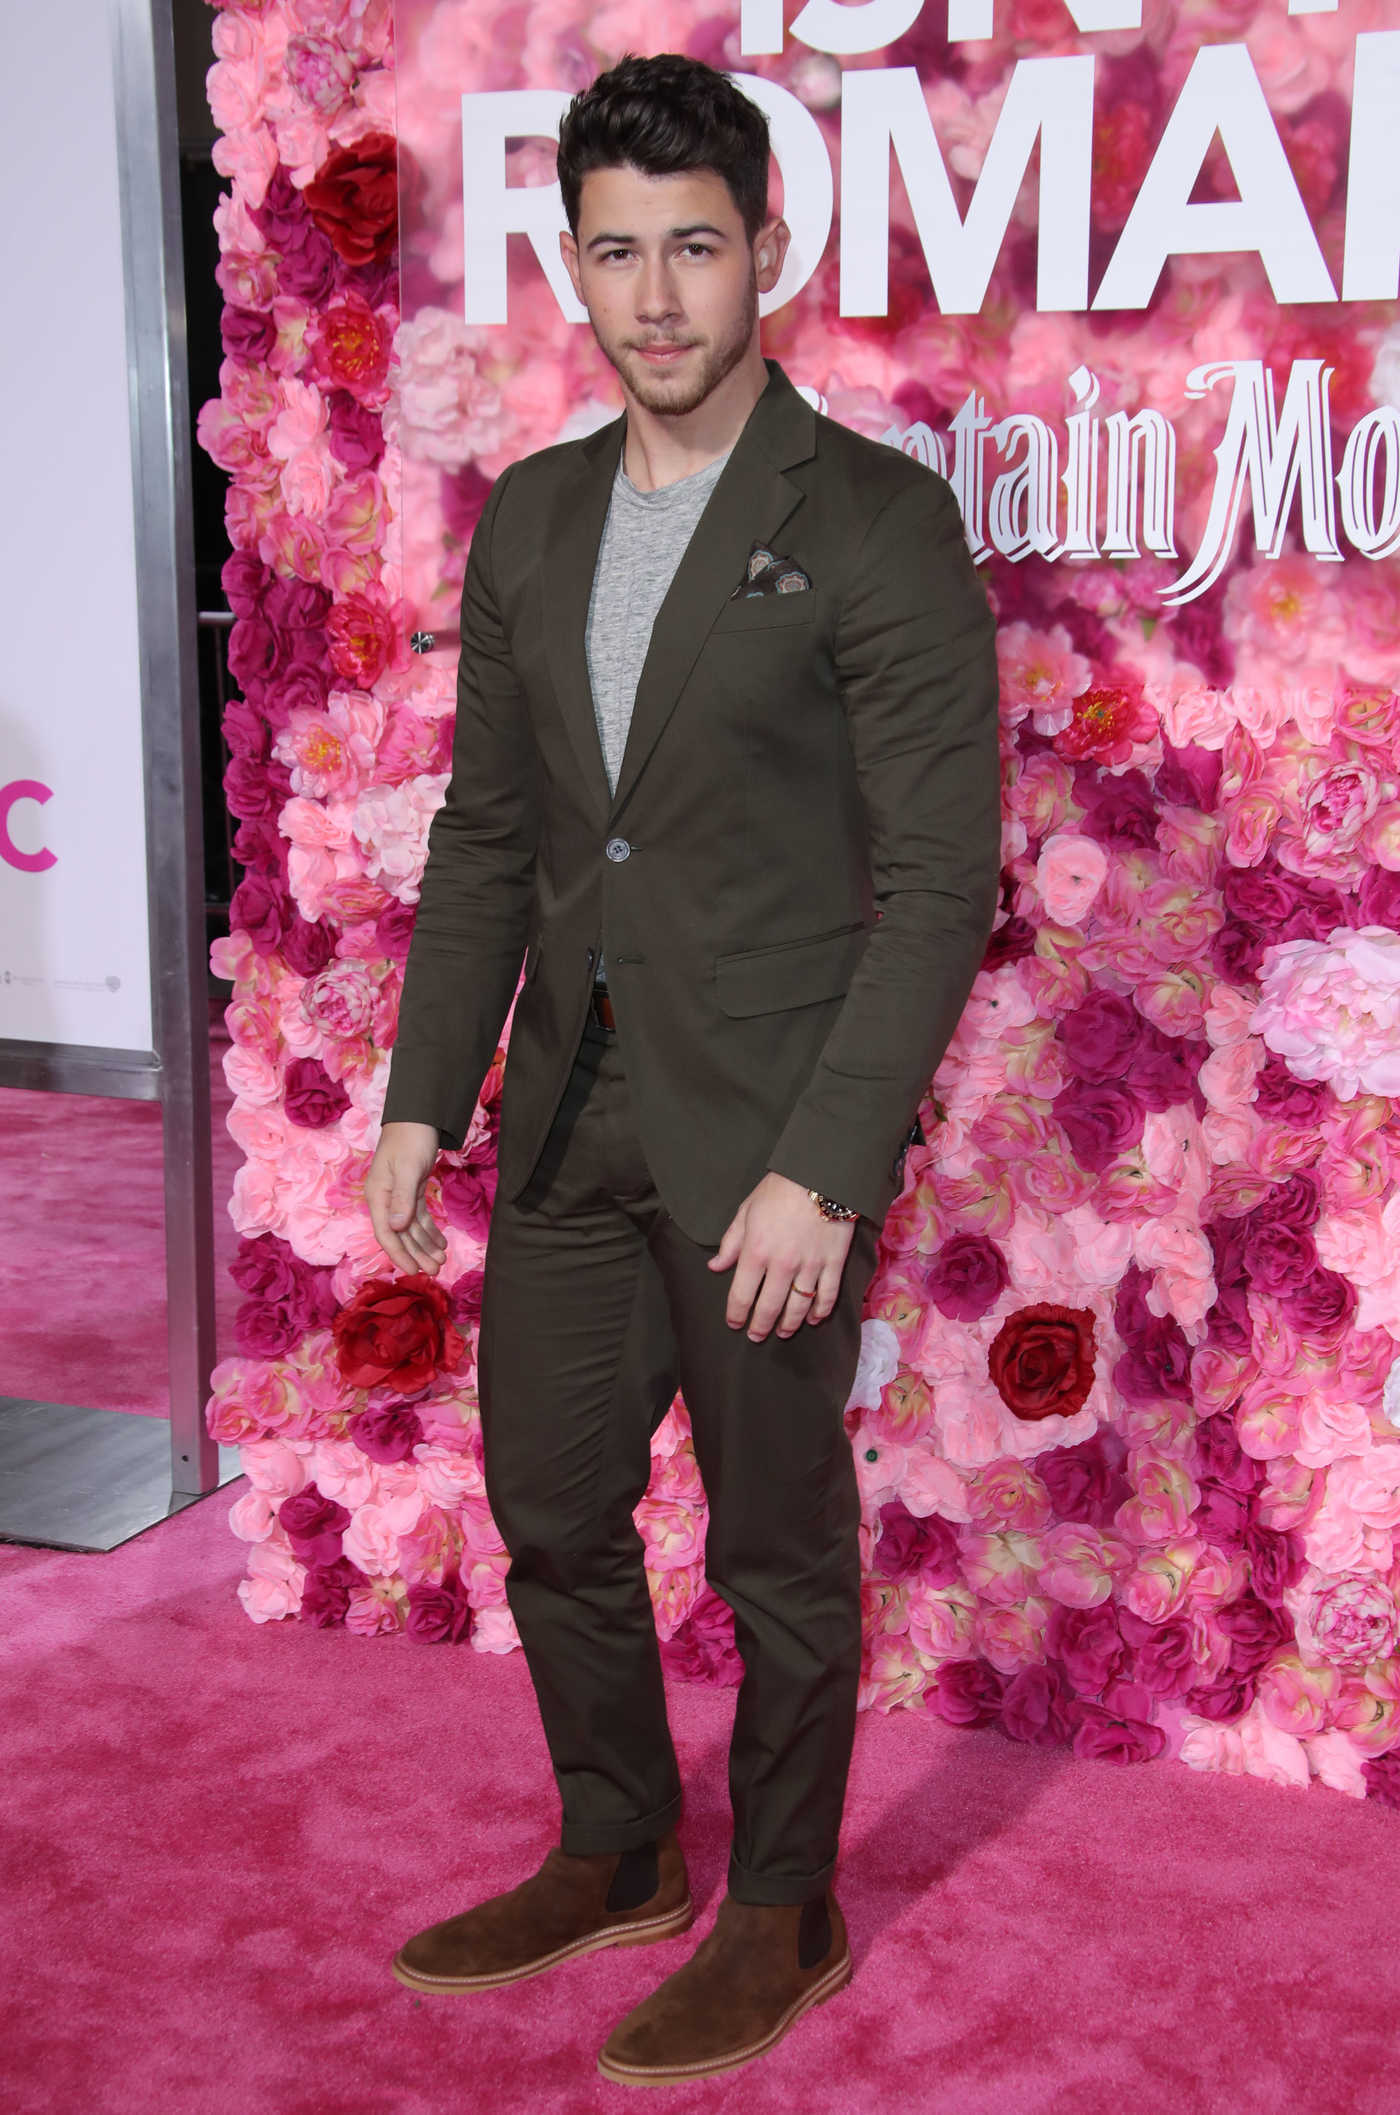 Nick Jonas Attends Isn't it Romantic Premiere in LA 02/11/2019